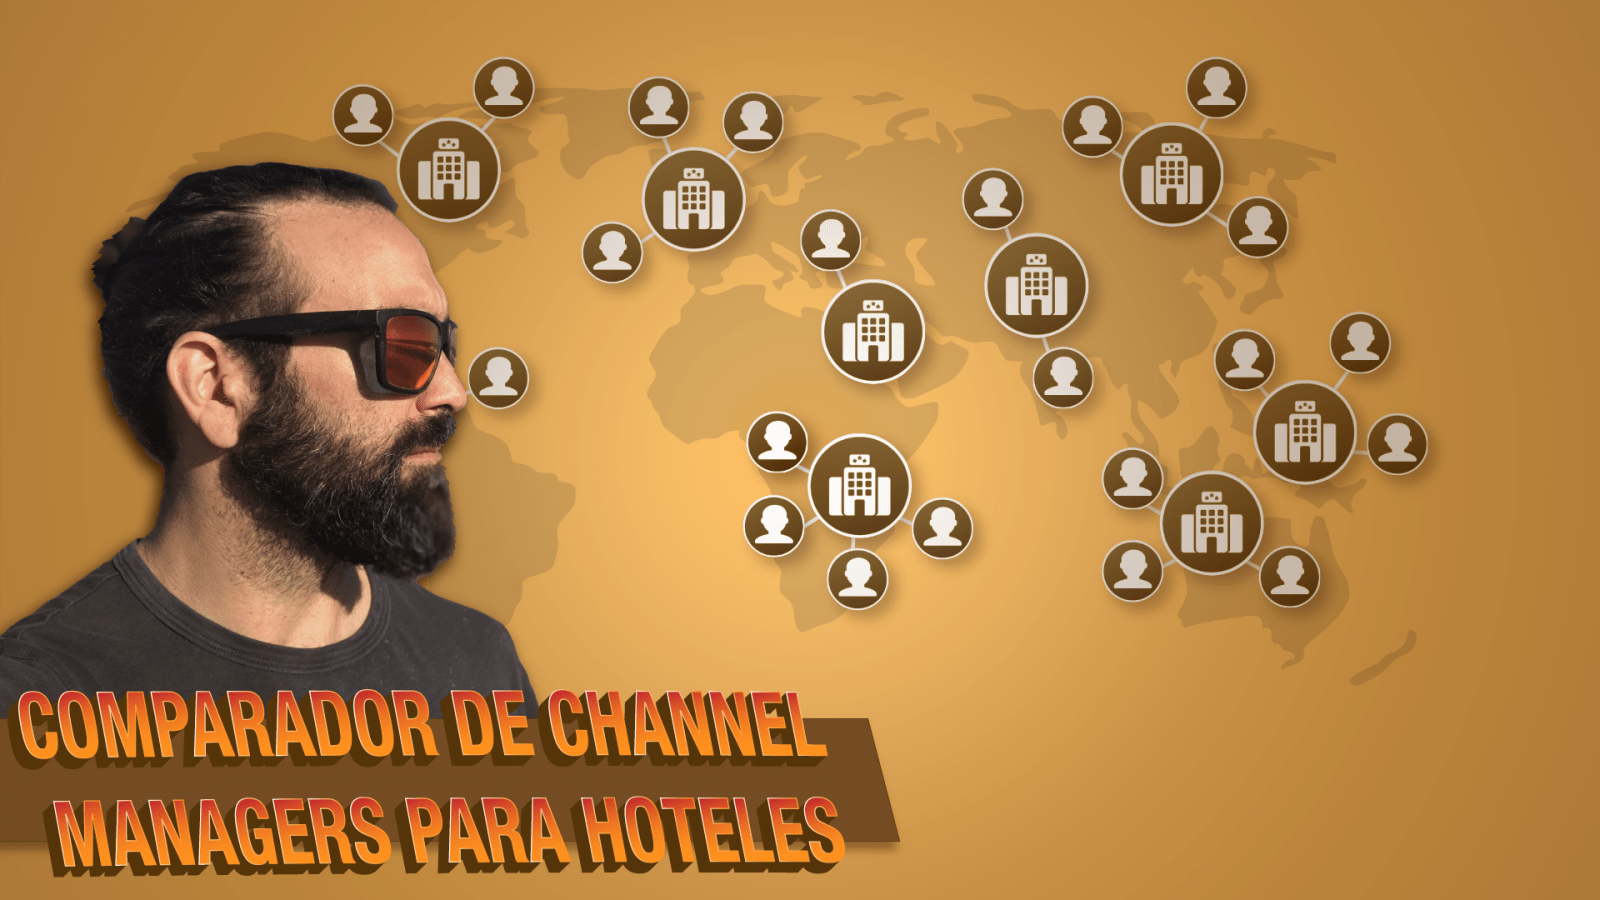 Comparador de Channel Managers para hoteles 2020